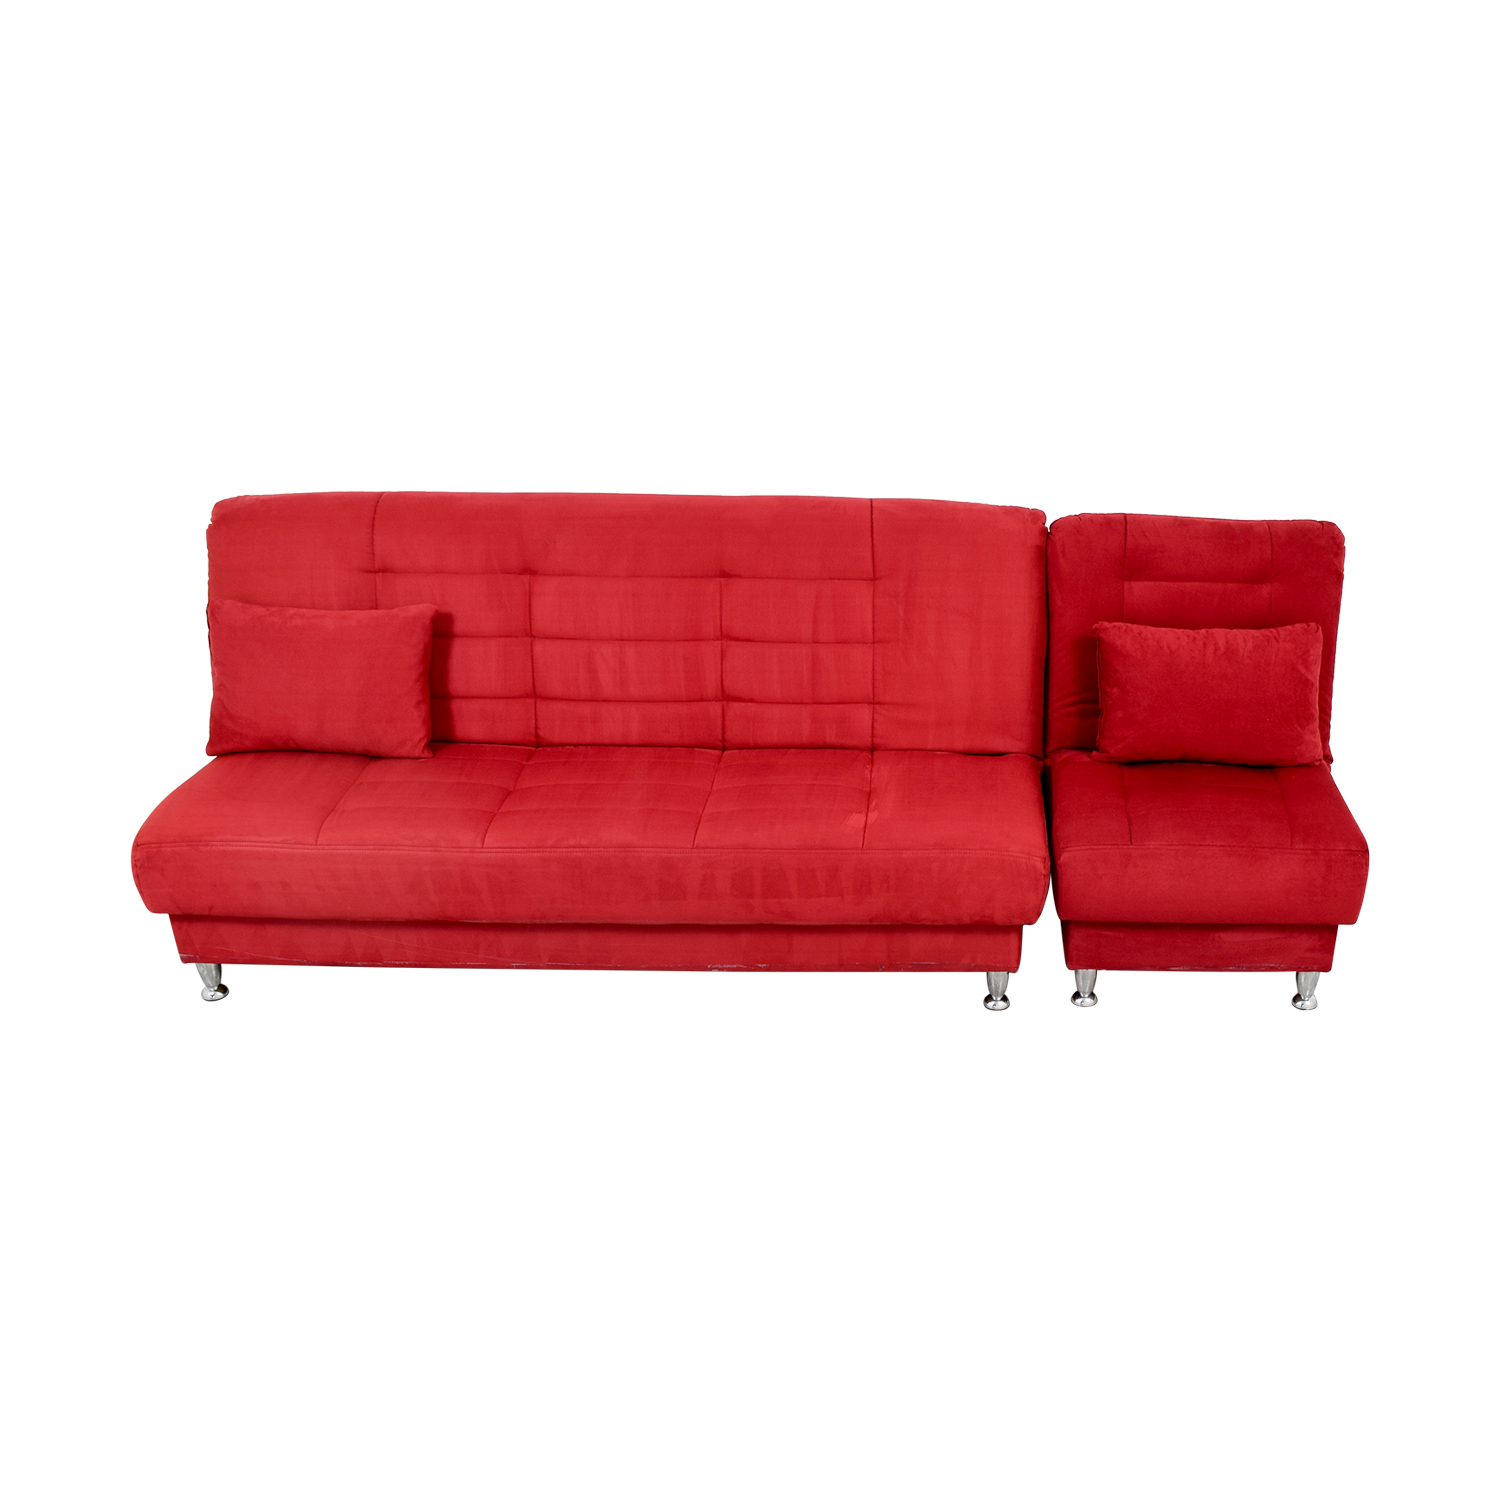 Latitude Latitude Red Sofa Bed with Storage